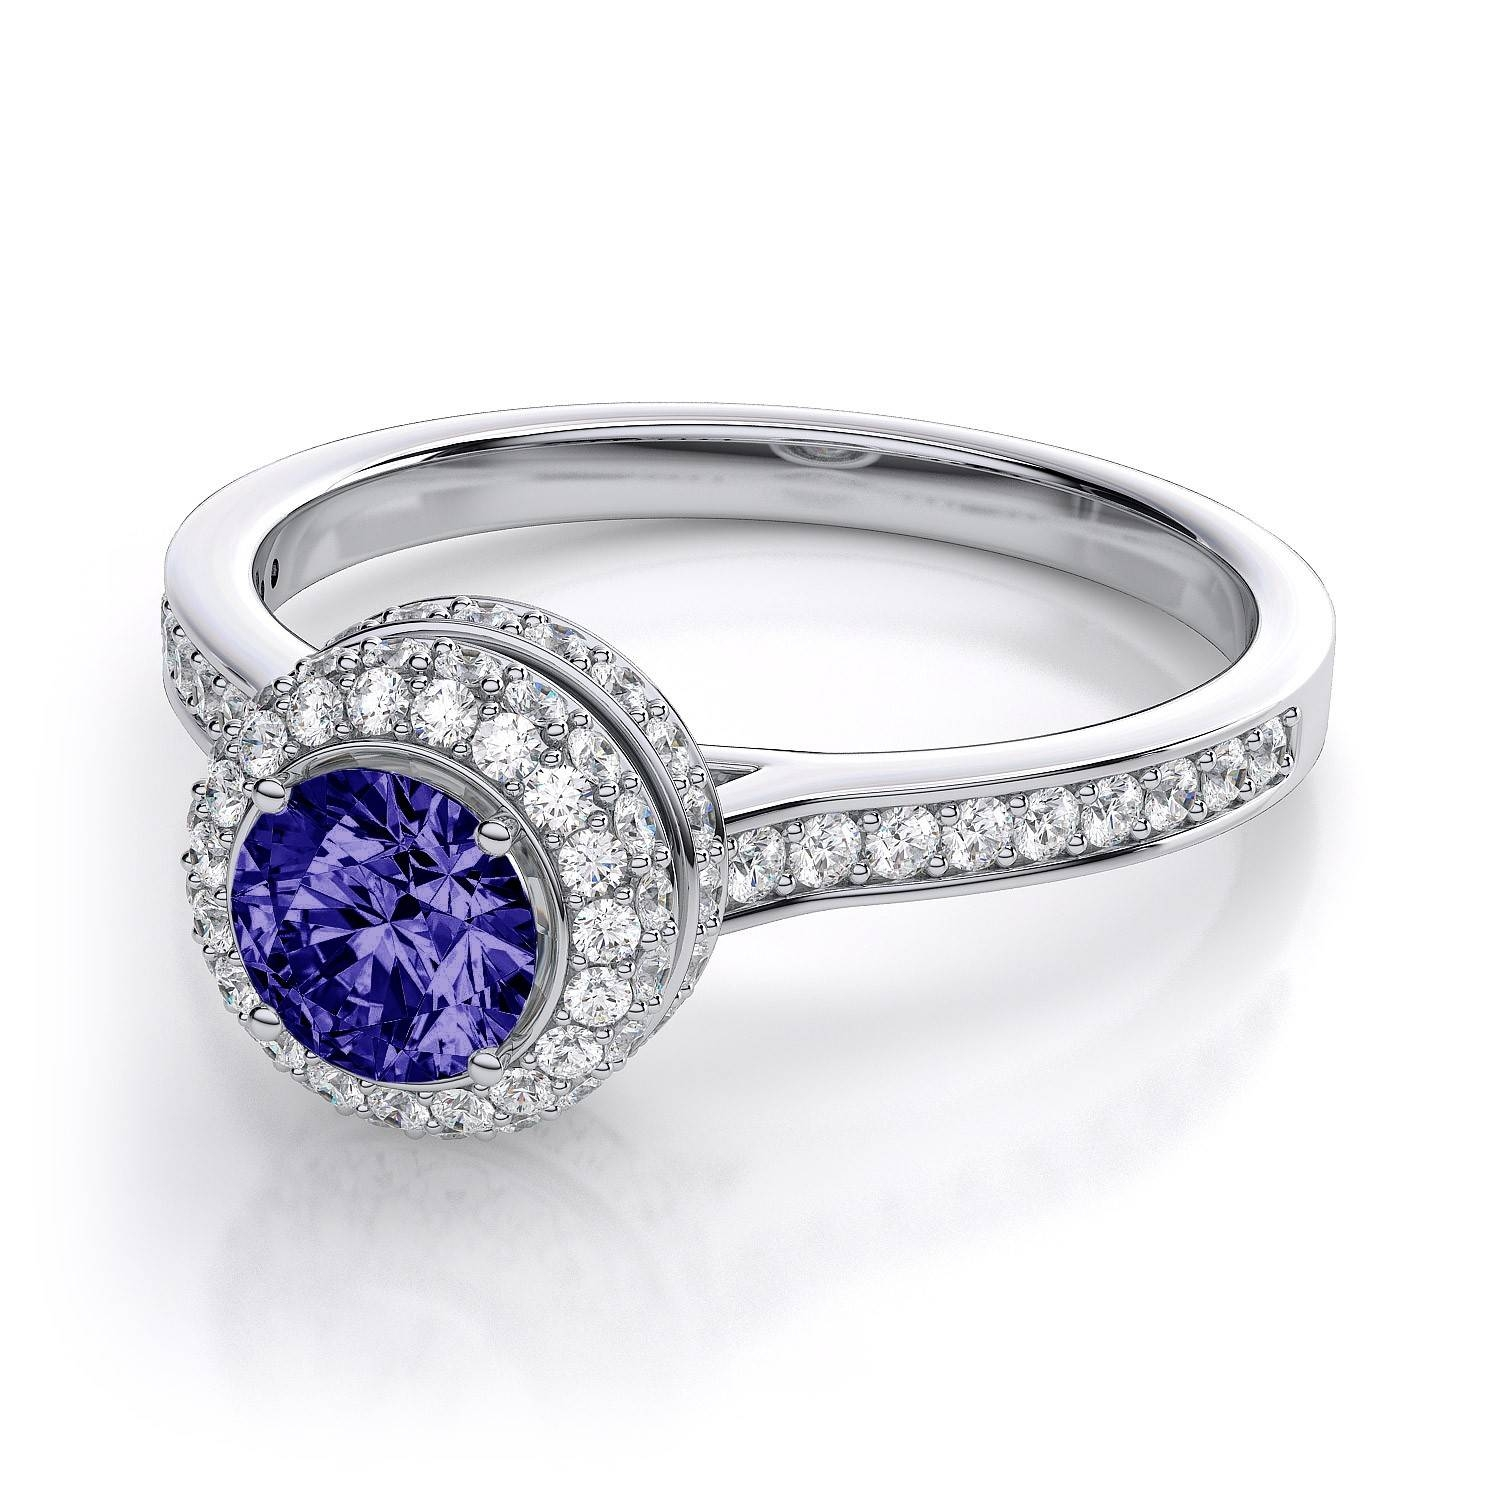 Cirque Halo Tanzanite And Diamond Engagement Ring In 14K White Gold Throughout Tanzanite White Gold Engagement Rings (Gallery 5 of 15)